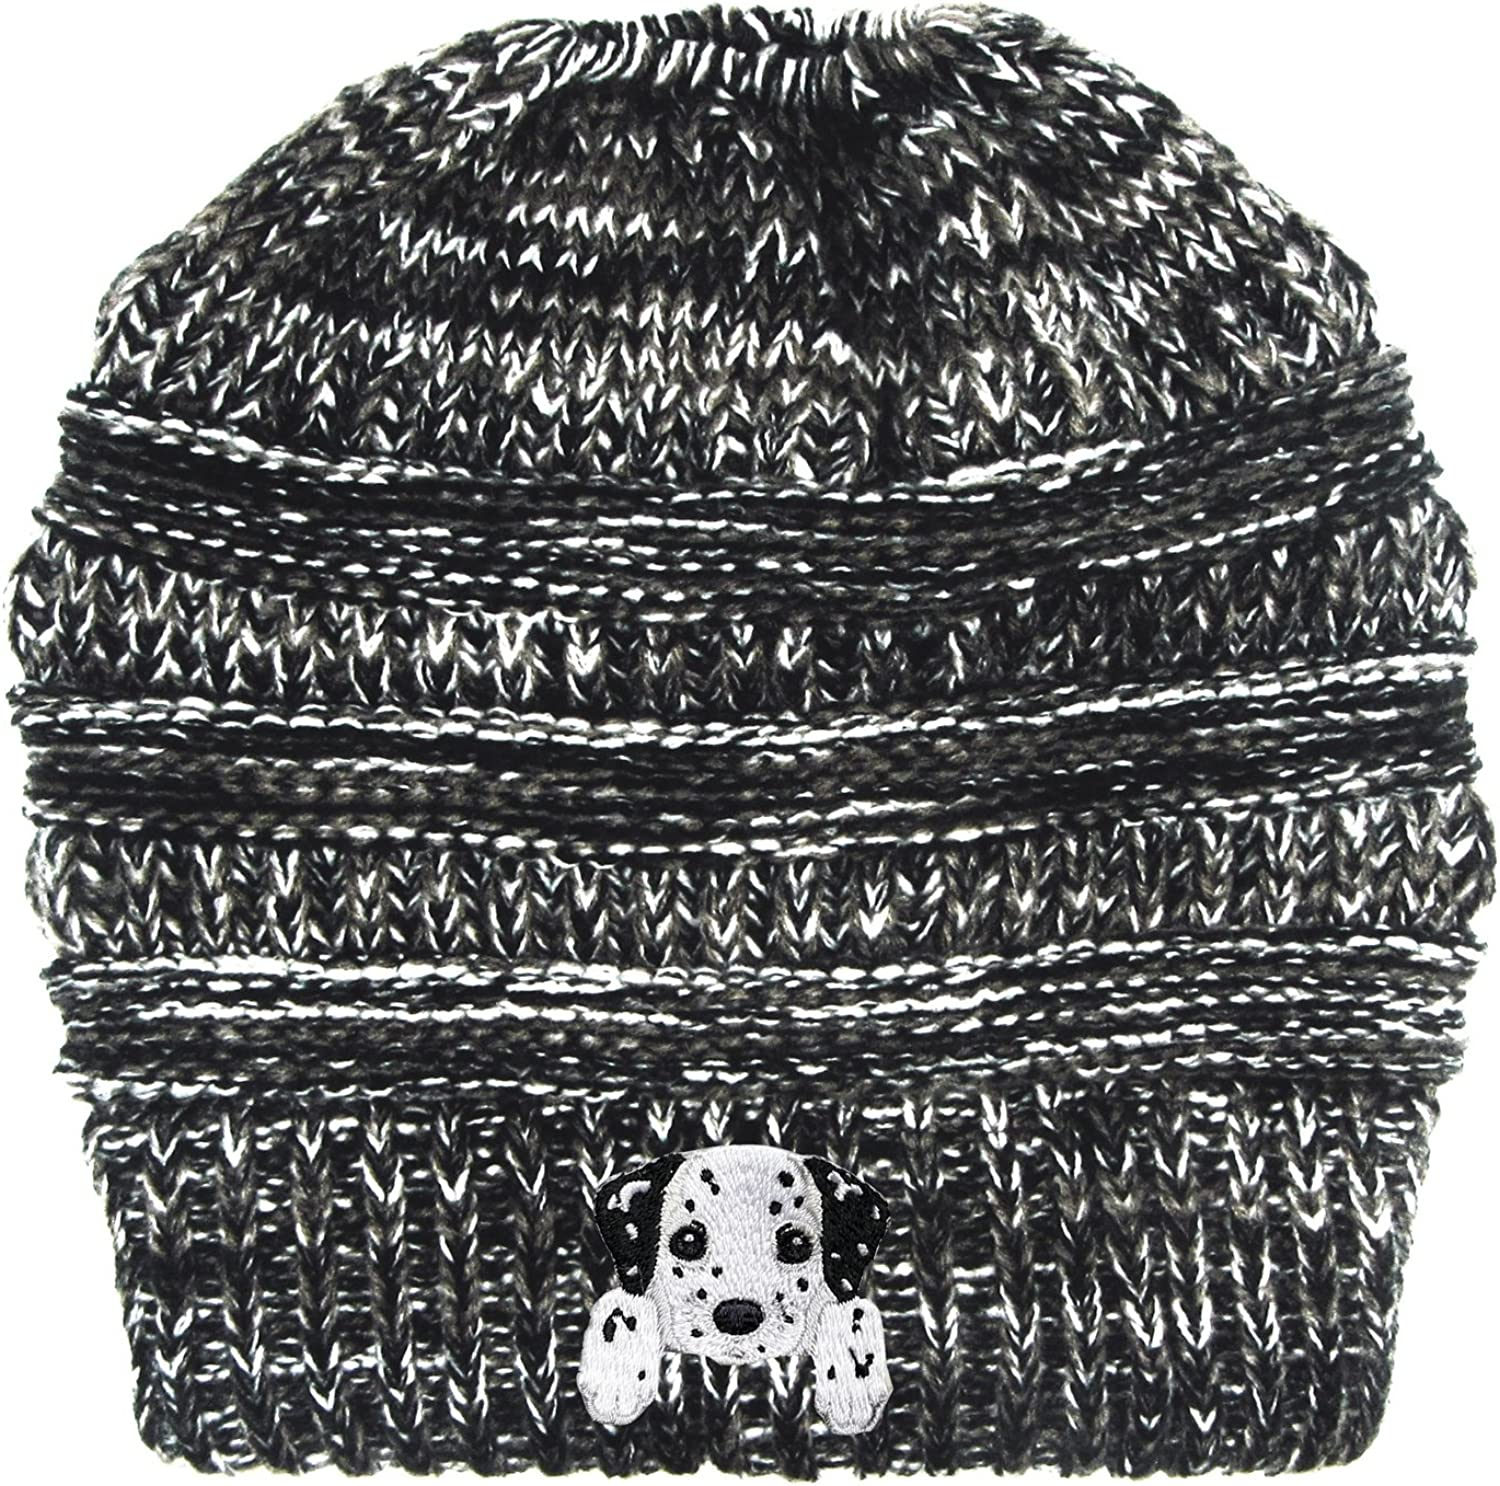 Lhotse Dalmatian Embroidered Puppy Dog Series Beanie  Stretch Fleece Cable Knit High Bun Ponytail Skullies Hat Cap  Black White Mix